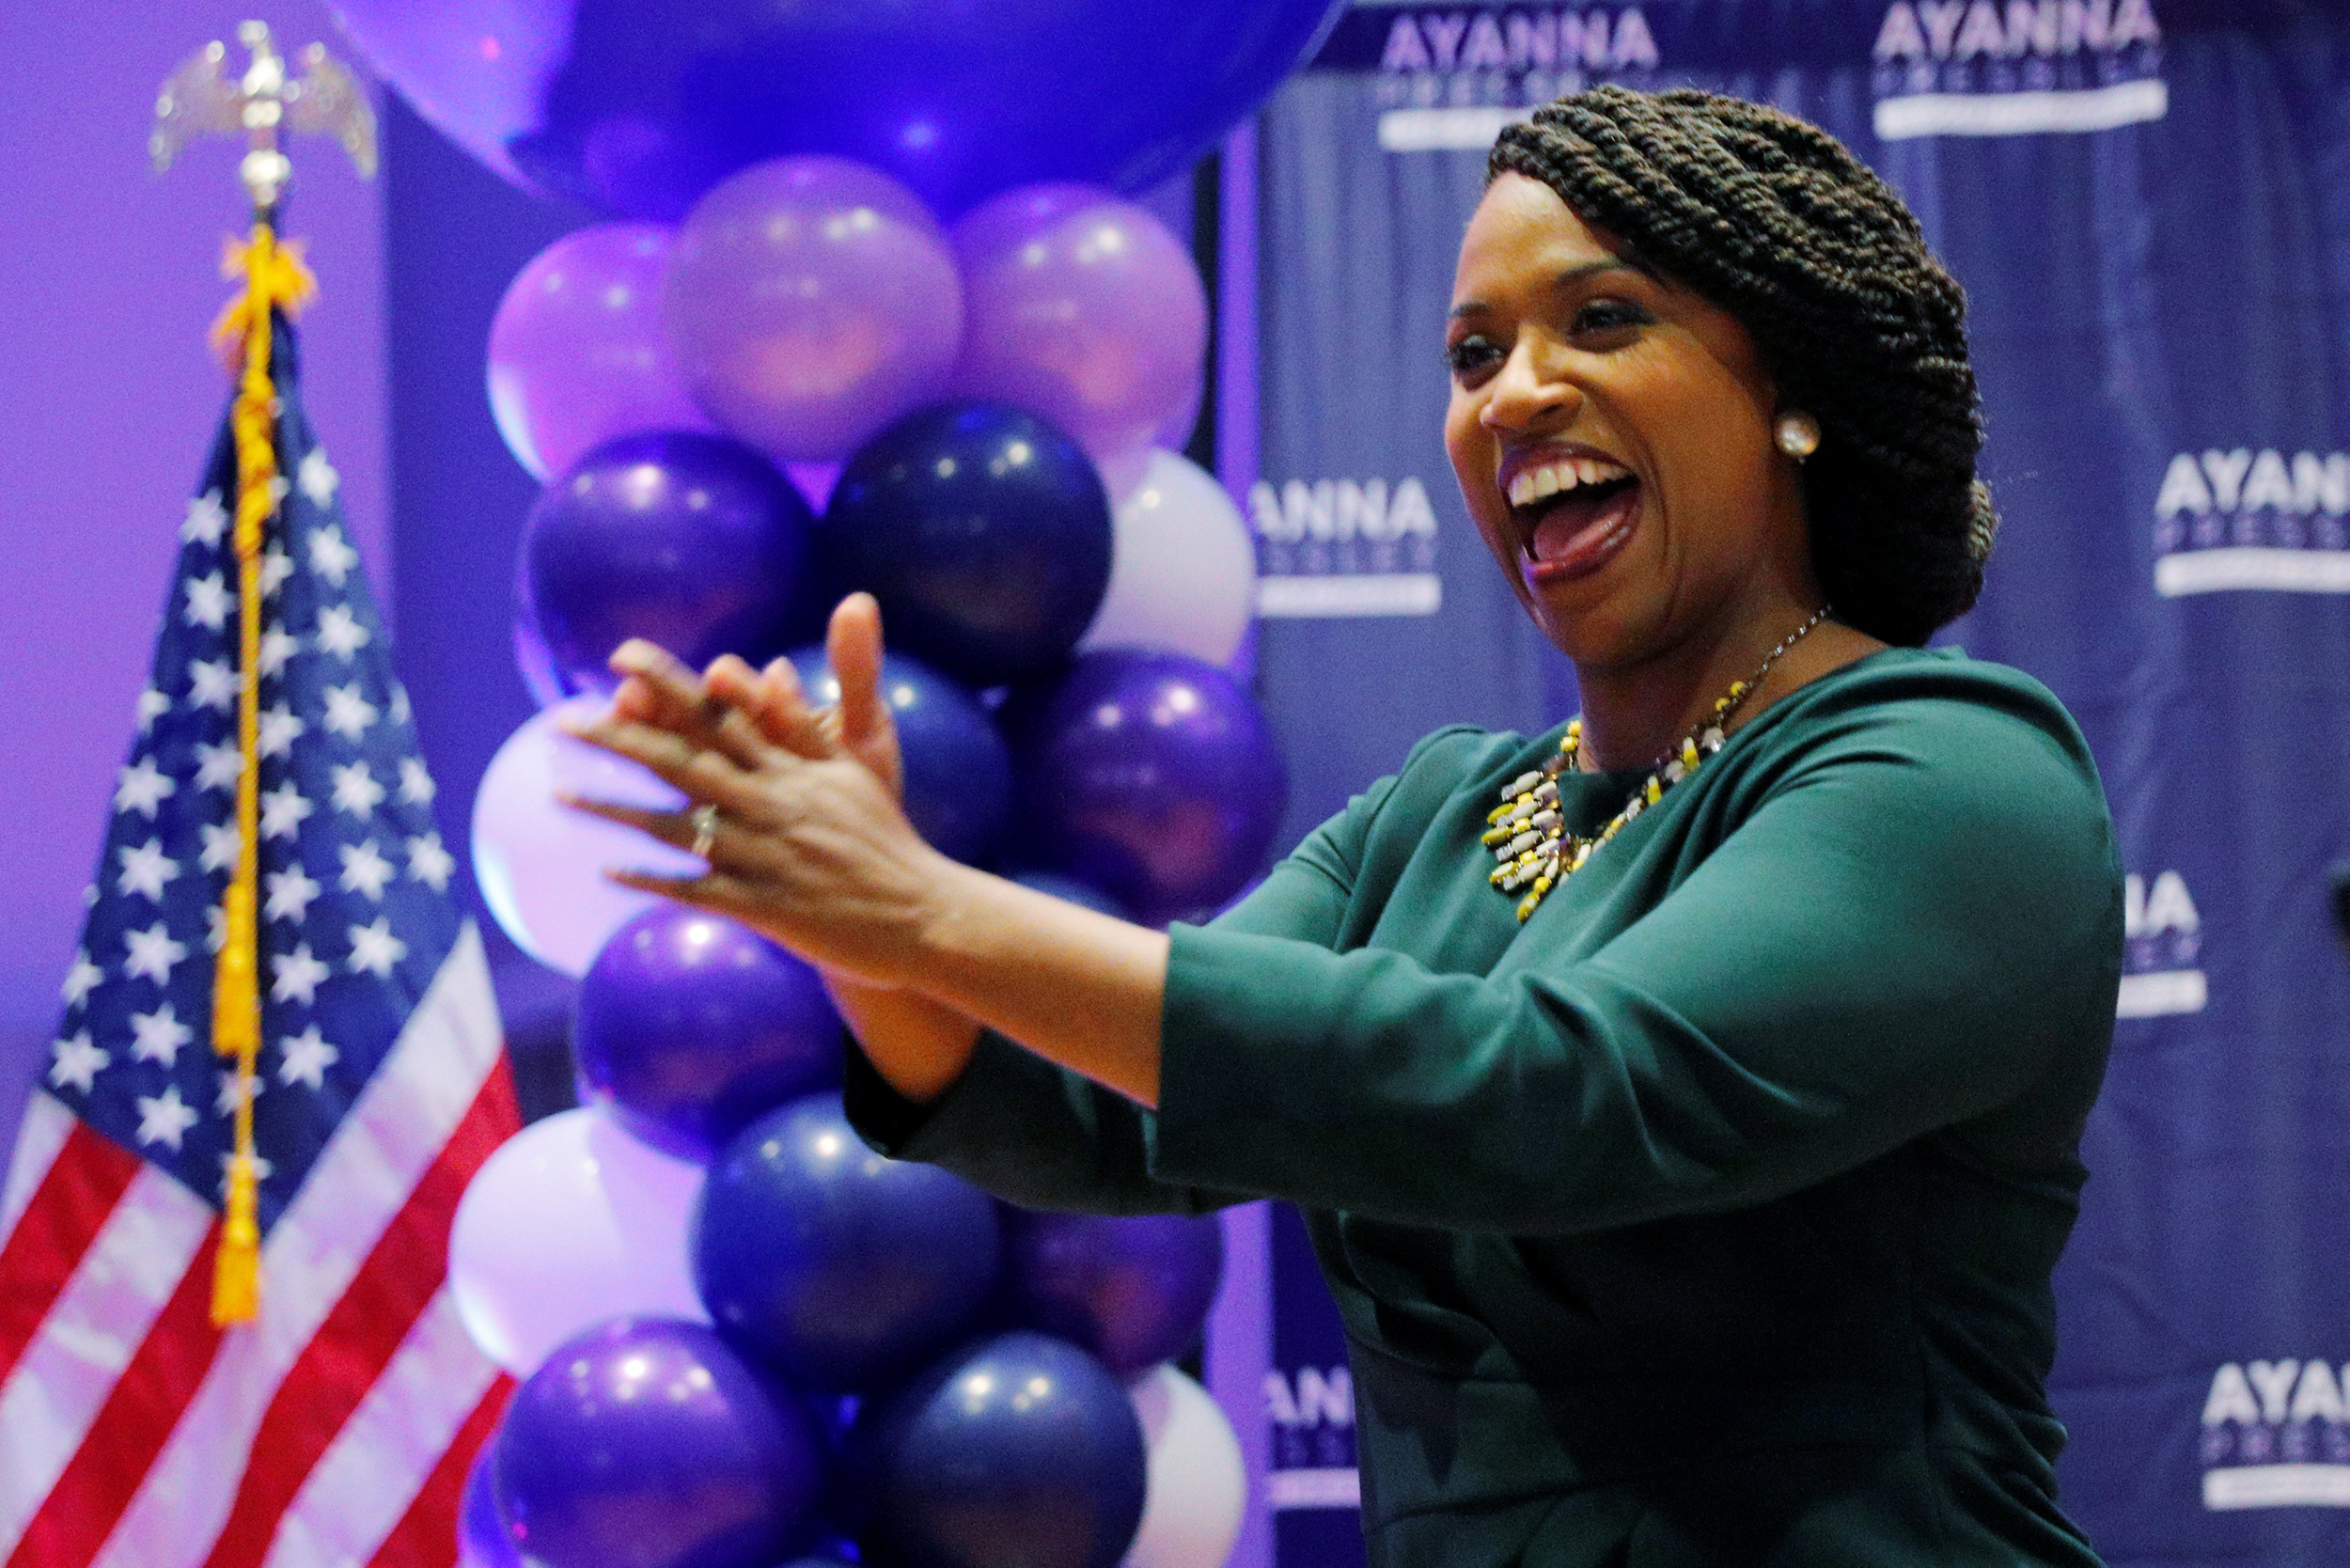 Women-dominated-the-2018-primary-season.-The-numbers-prove-it.